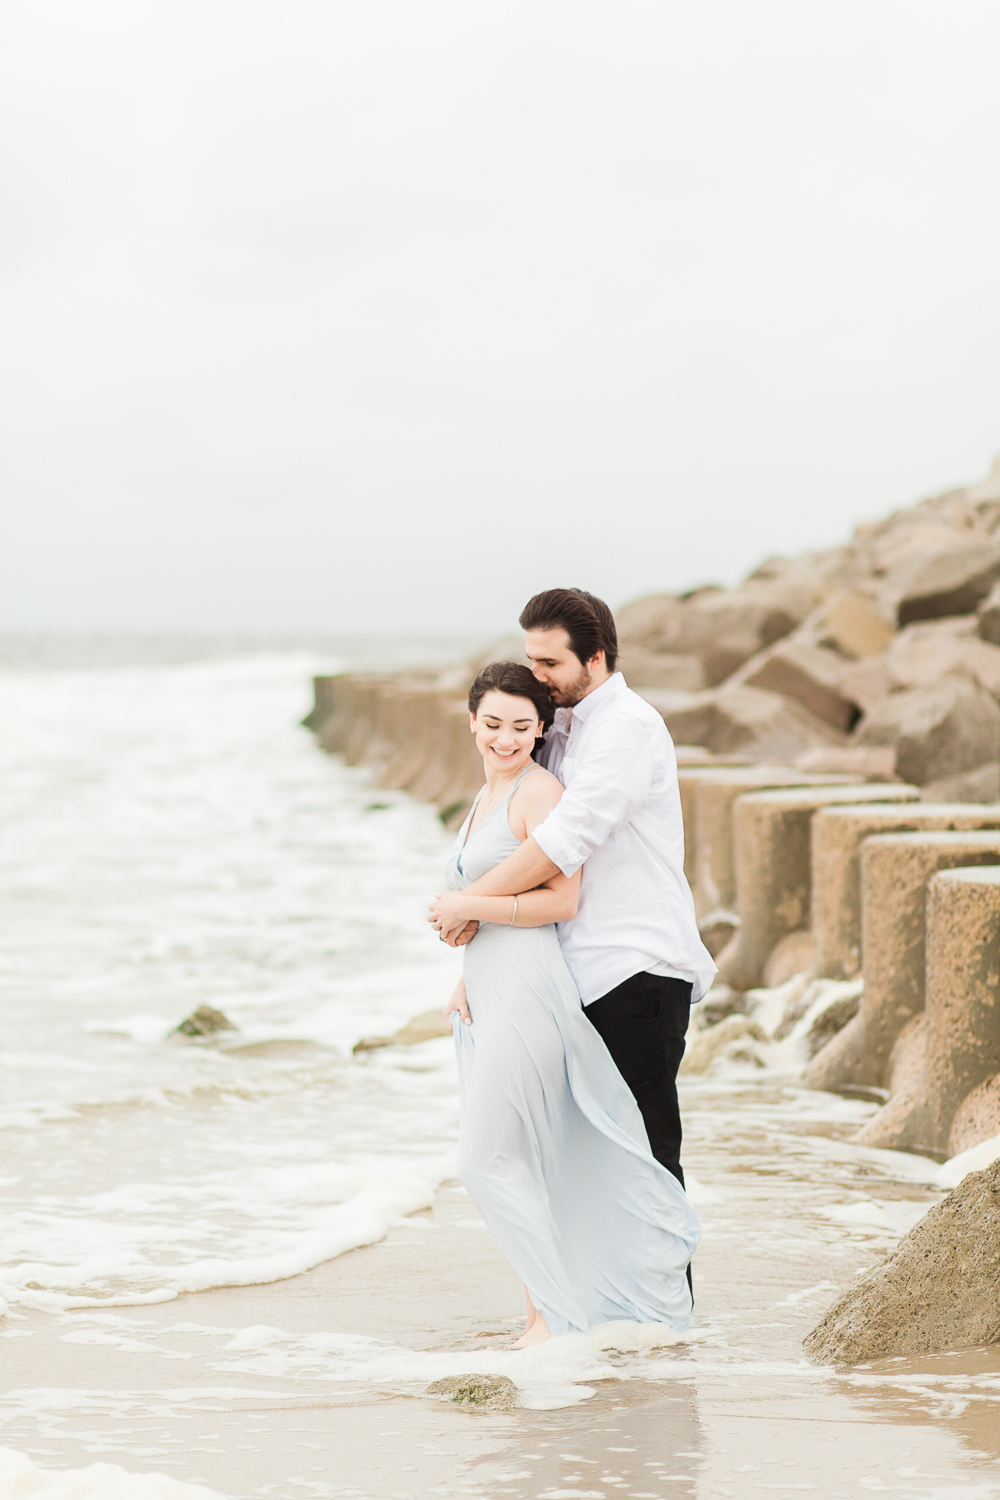 wilmingtonweddingphotographer-20.jpg